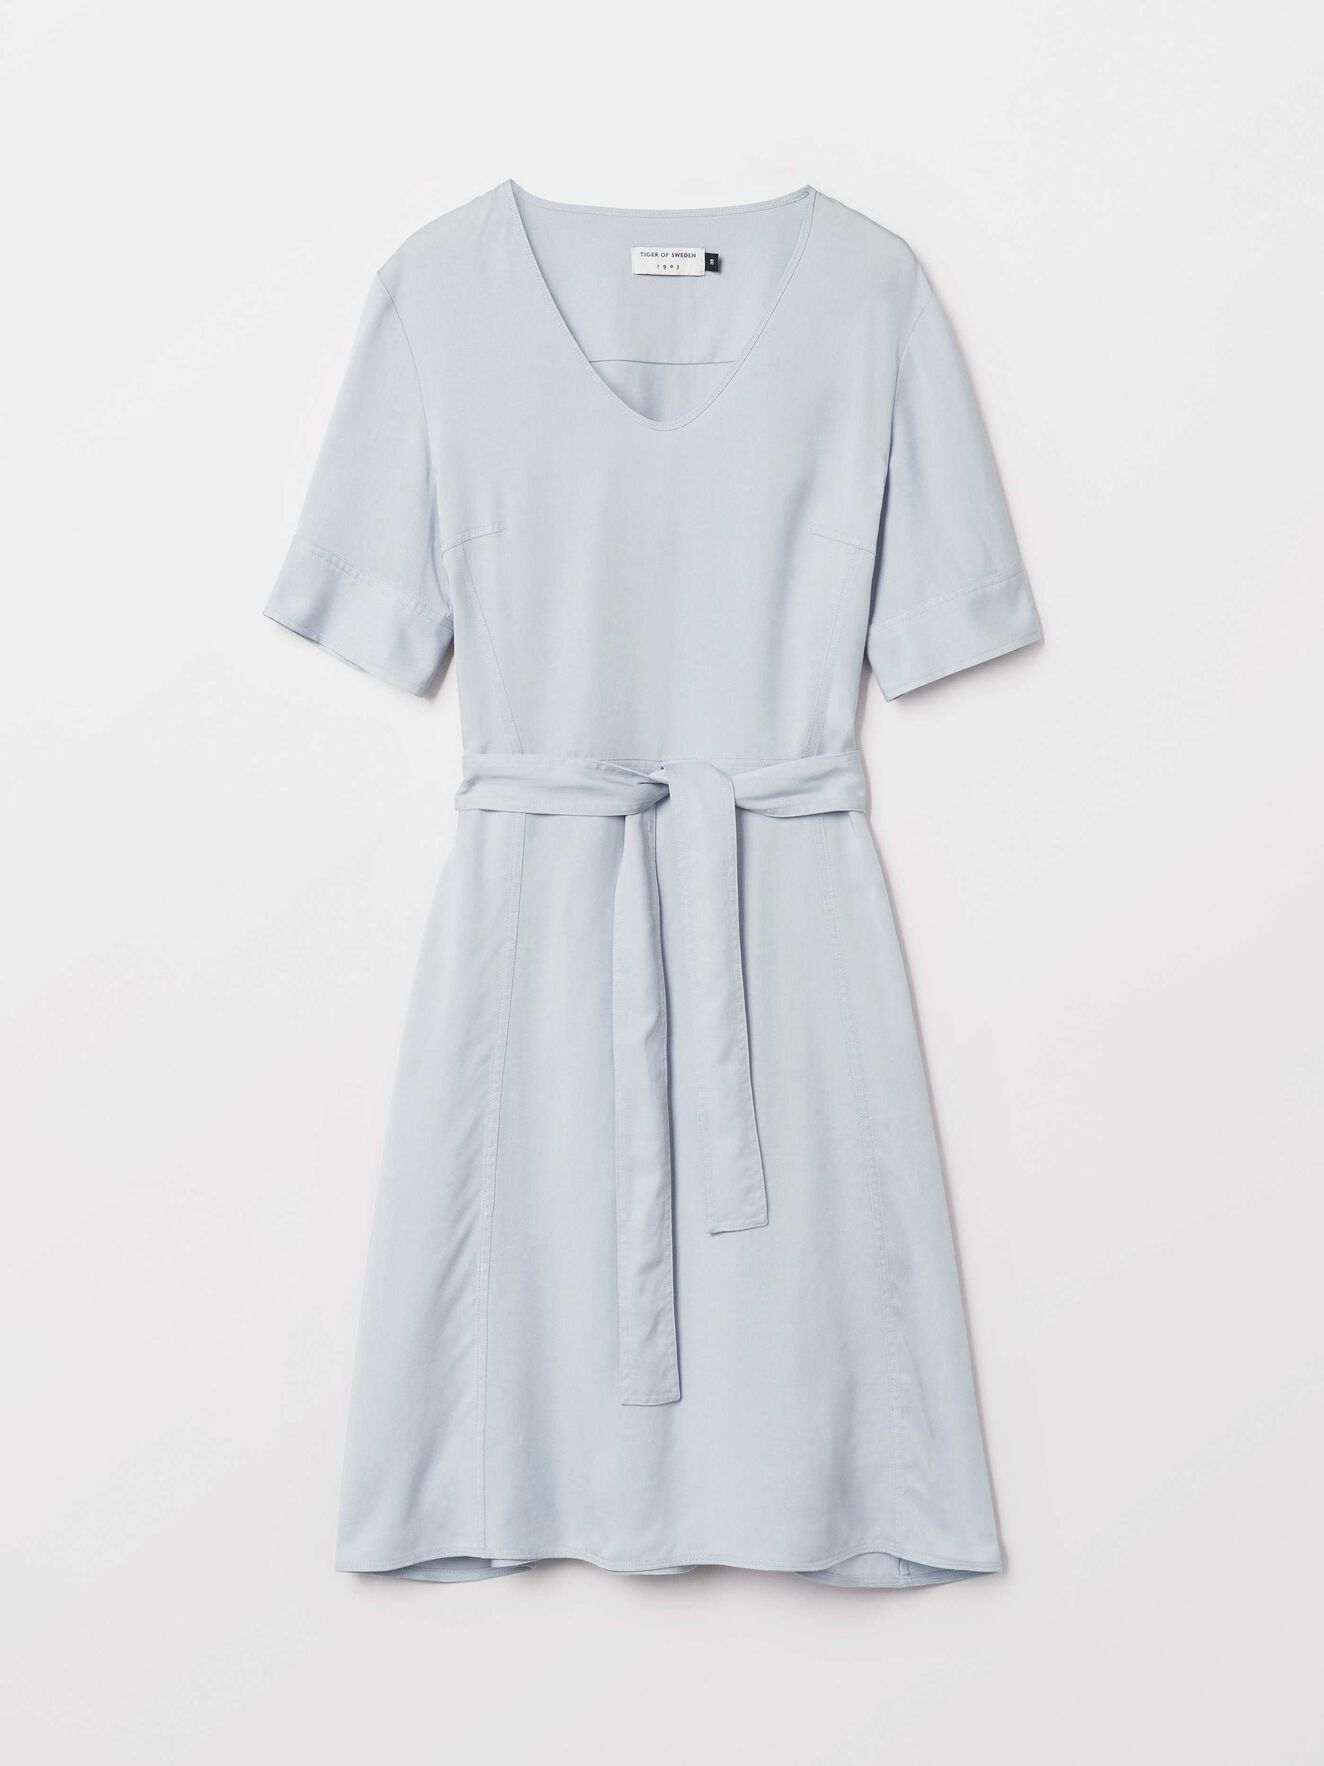 Tanella Dress in Sombre Blue from Tiger of Sweden